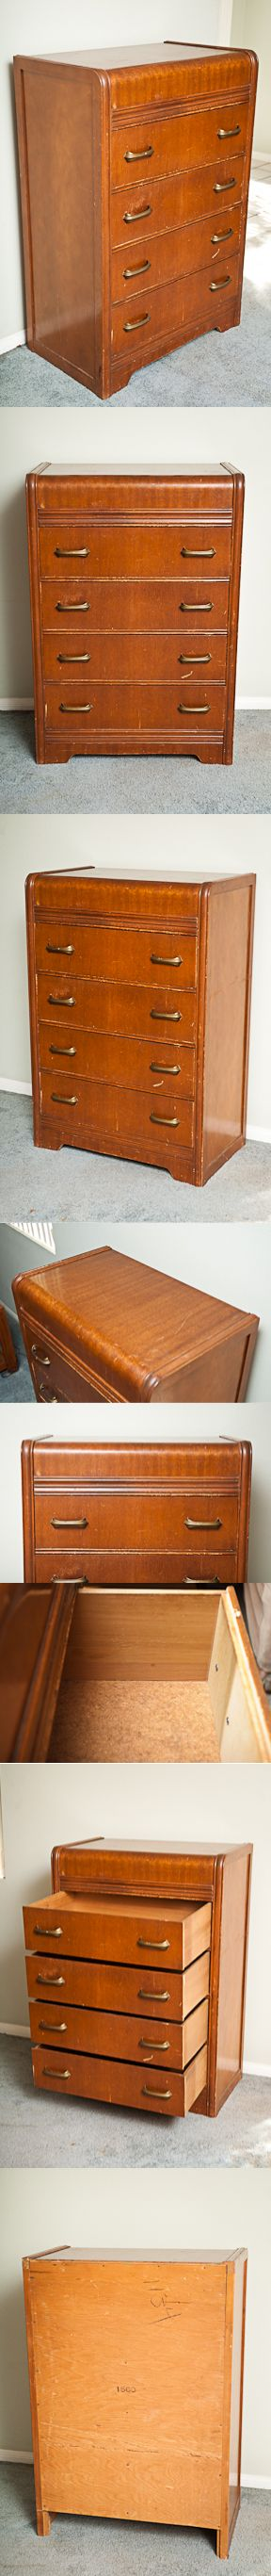 Vintage Waterfall Dresser $175 Retro, Mid-Century Waterfall Chest of Drawers, Depression-Era Art Deco Waterfall Dresser, 1920s, 1930s, 1940s furniture